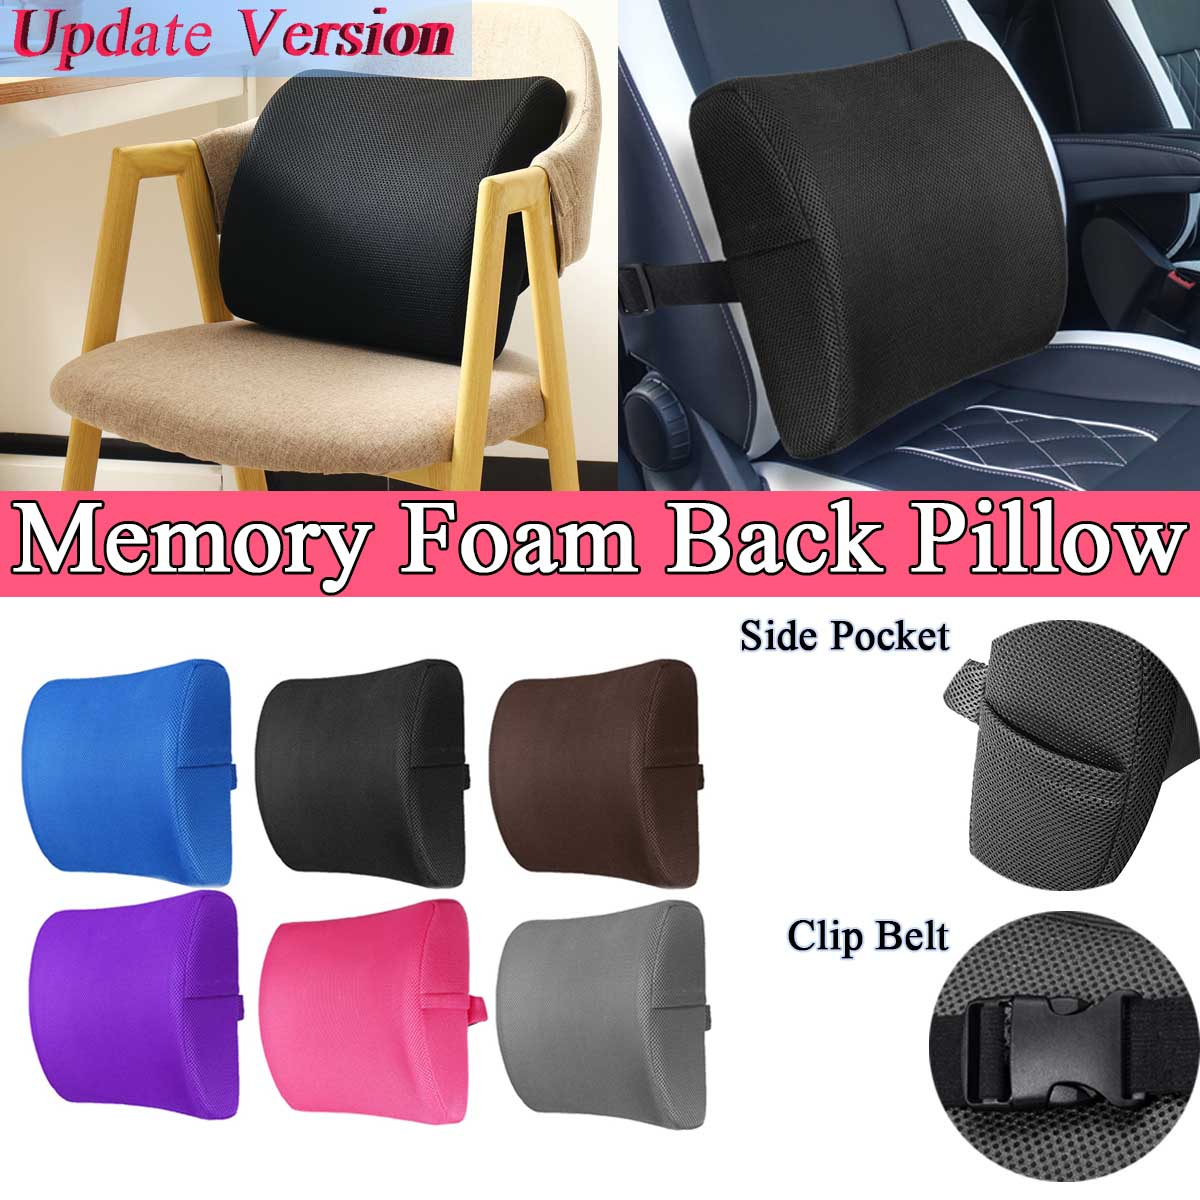 6 Color Soft Memory Foam Car Seat Winter Pillows Lumbar Support Back Massager Waist Cushion For Chairs Home Office Relieve Pain